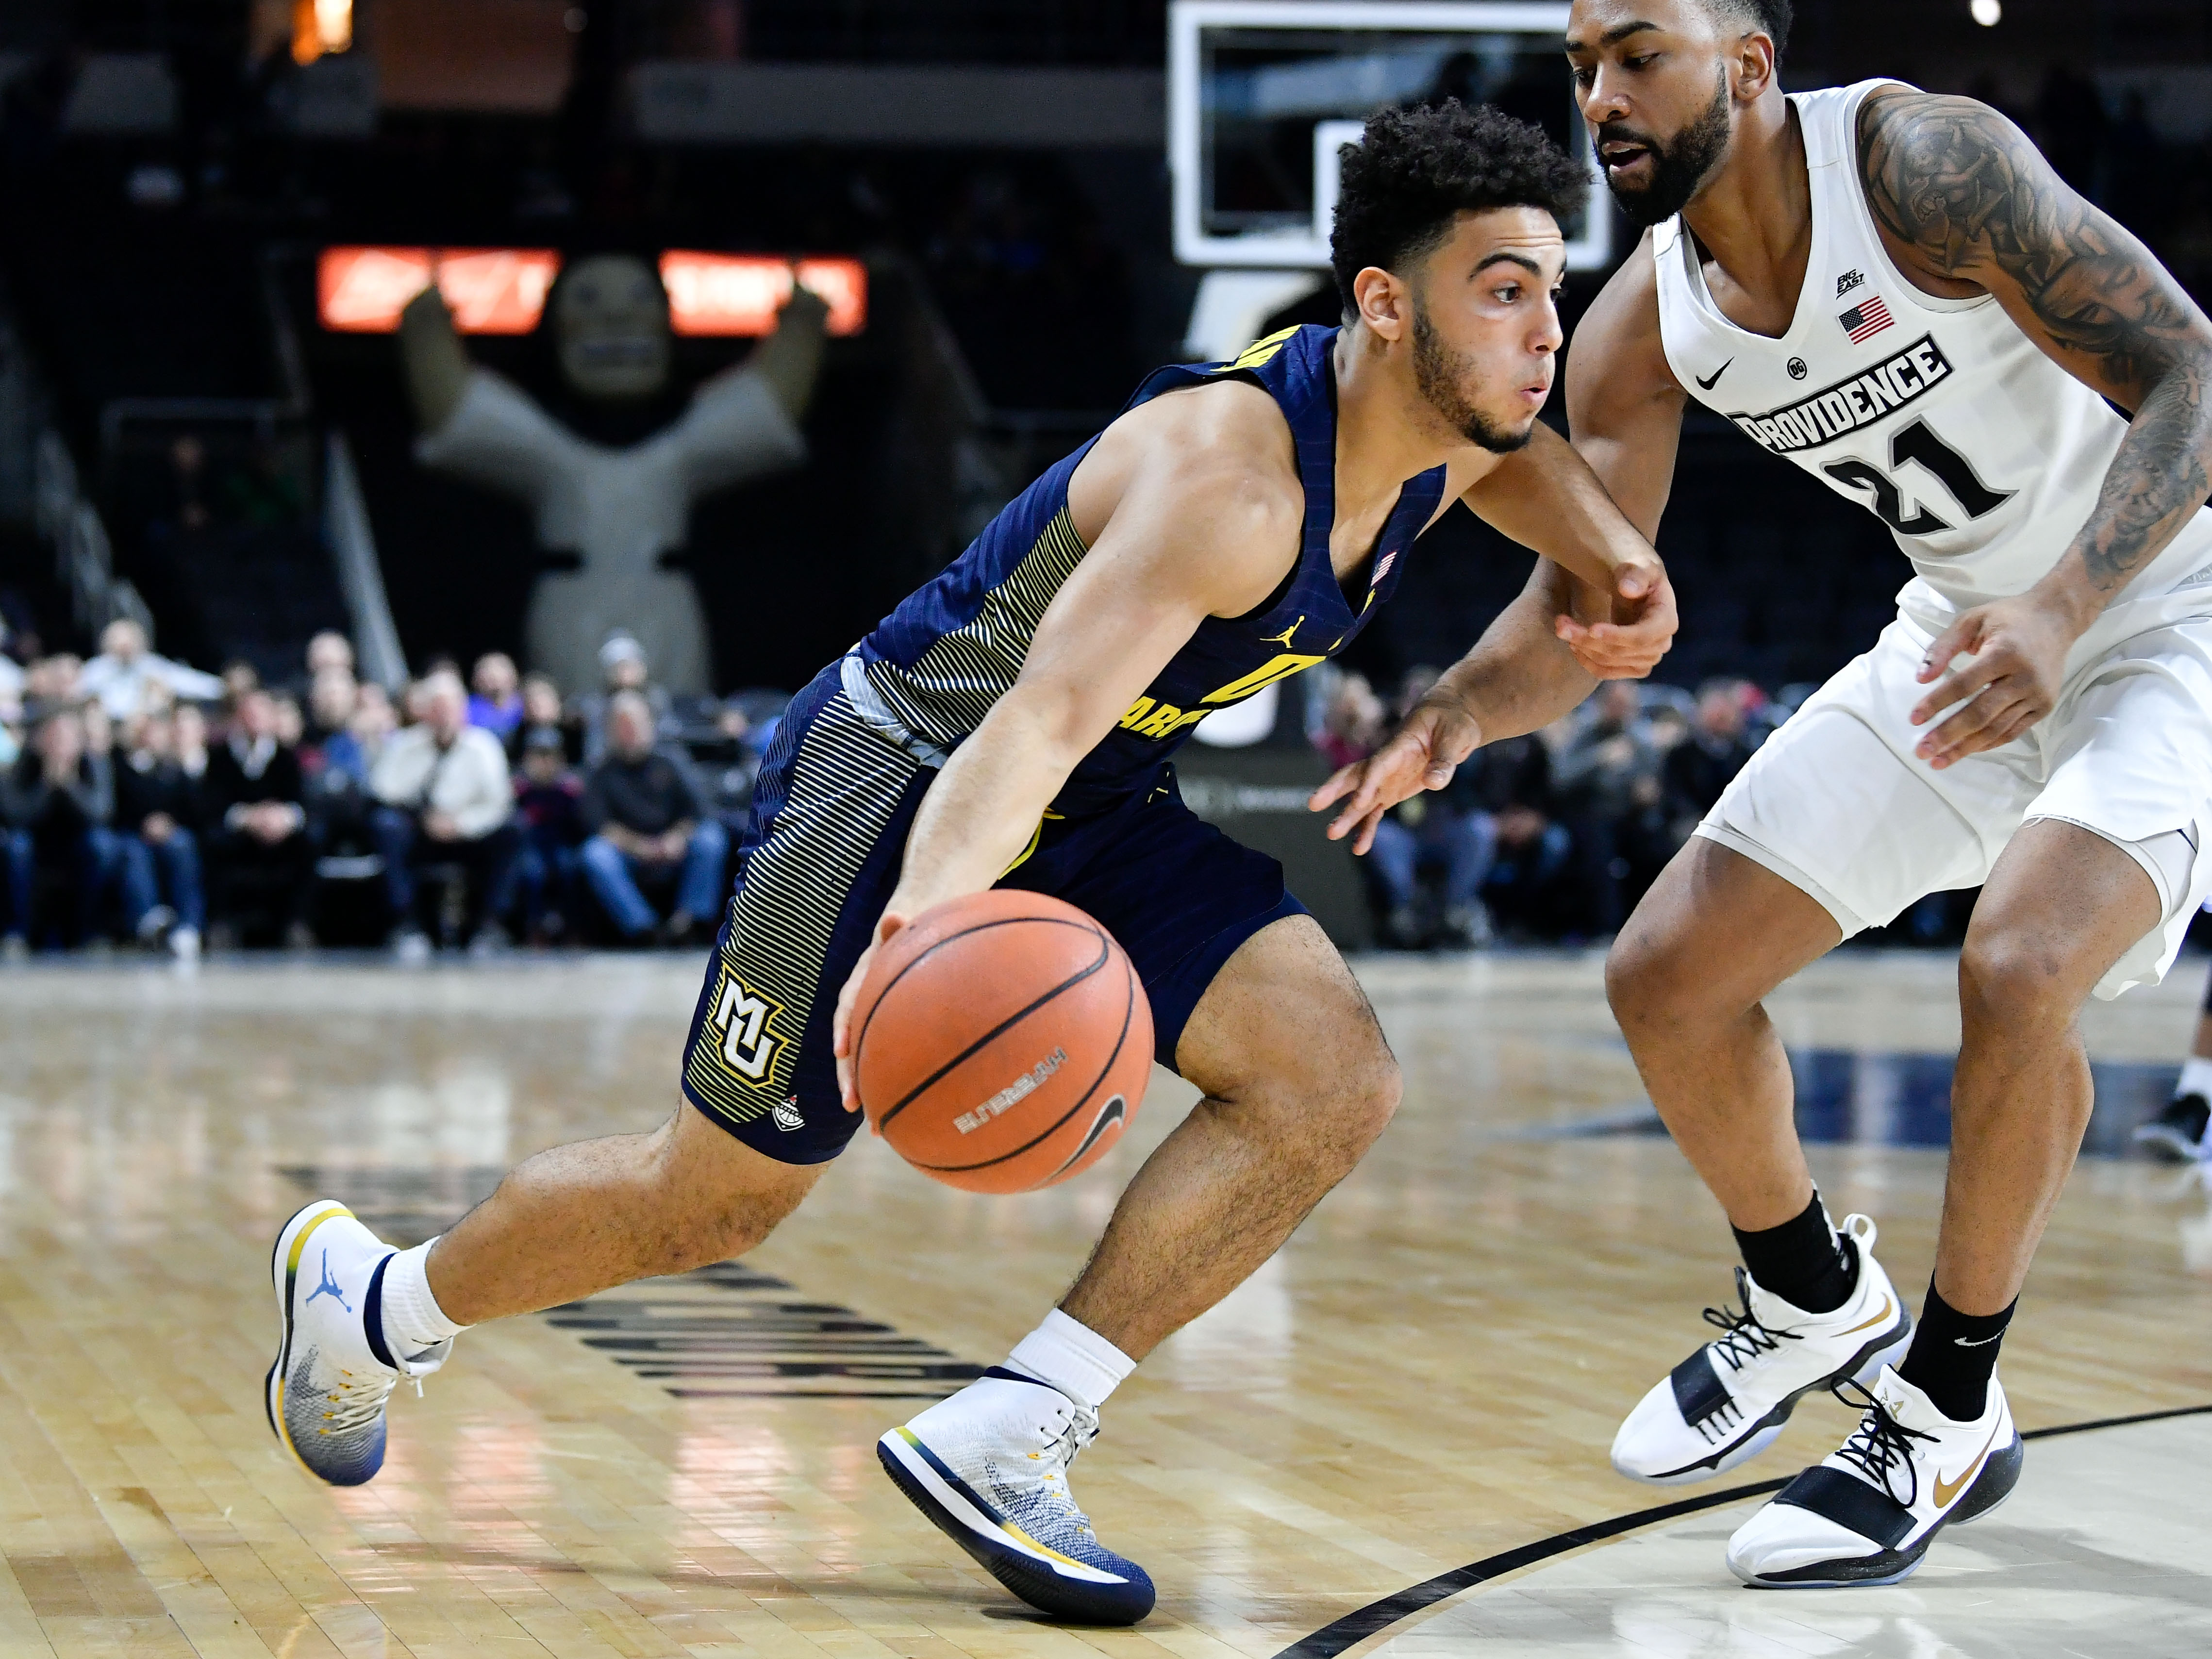 Marquette's Markus Howard proves he's one of college basketball's special shooters with 52-point game